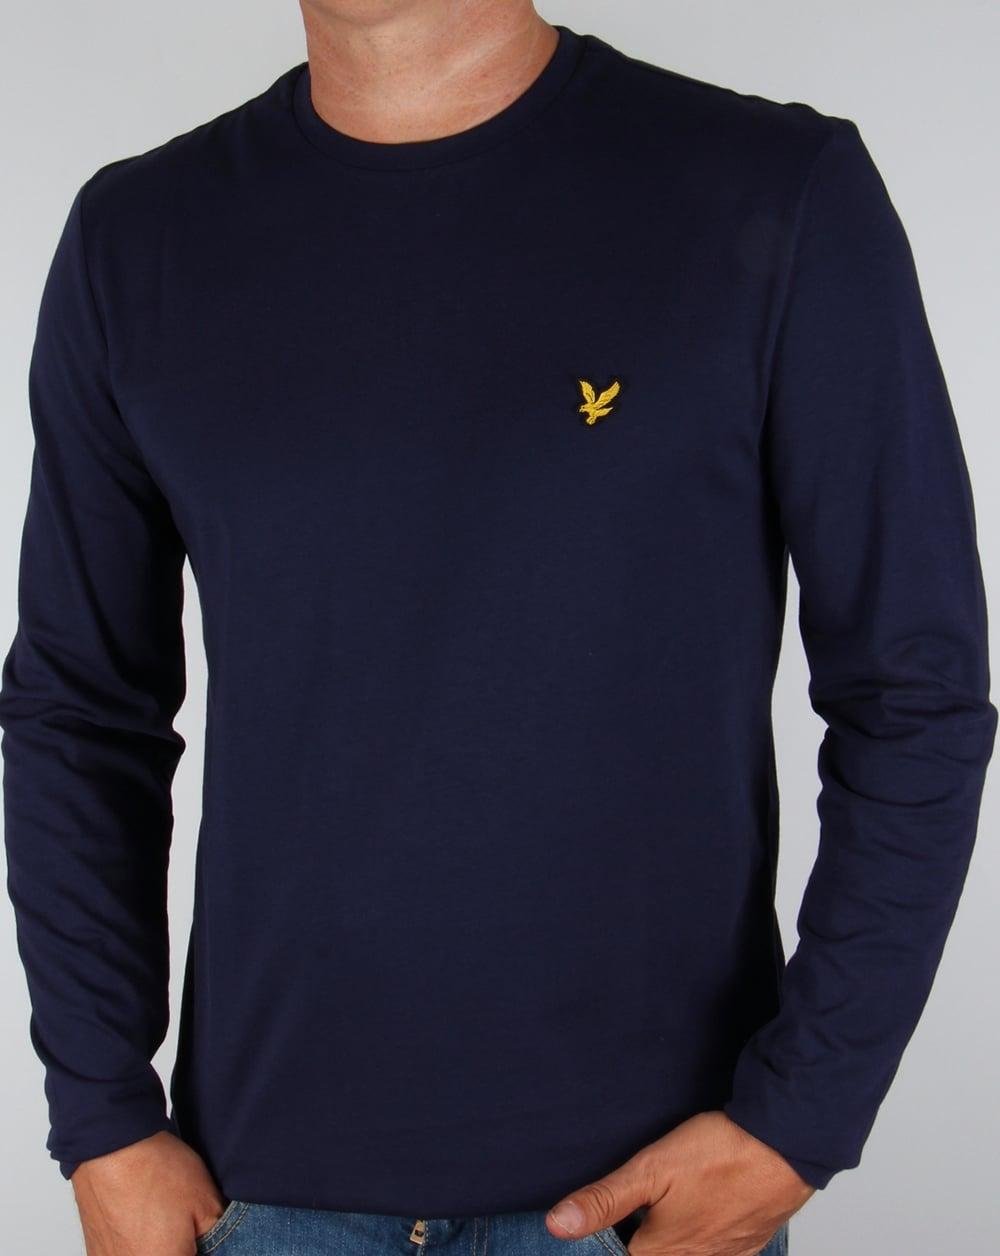 lyle and scott long sleeve t shirt navy tee crew neck men 39 s. Black Bedroom Furniture Sets. Home Design Ideas